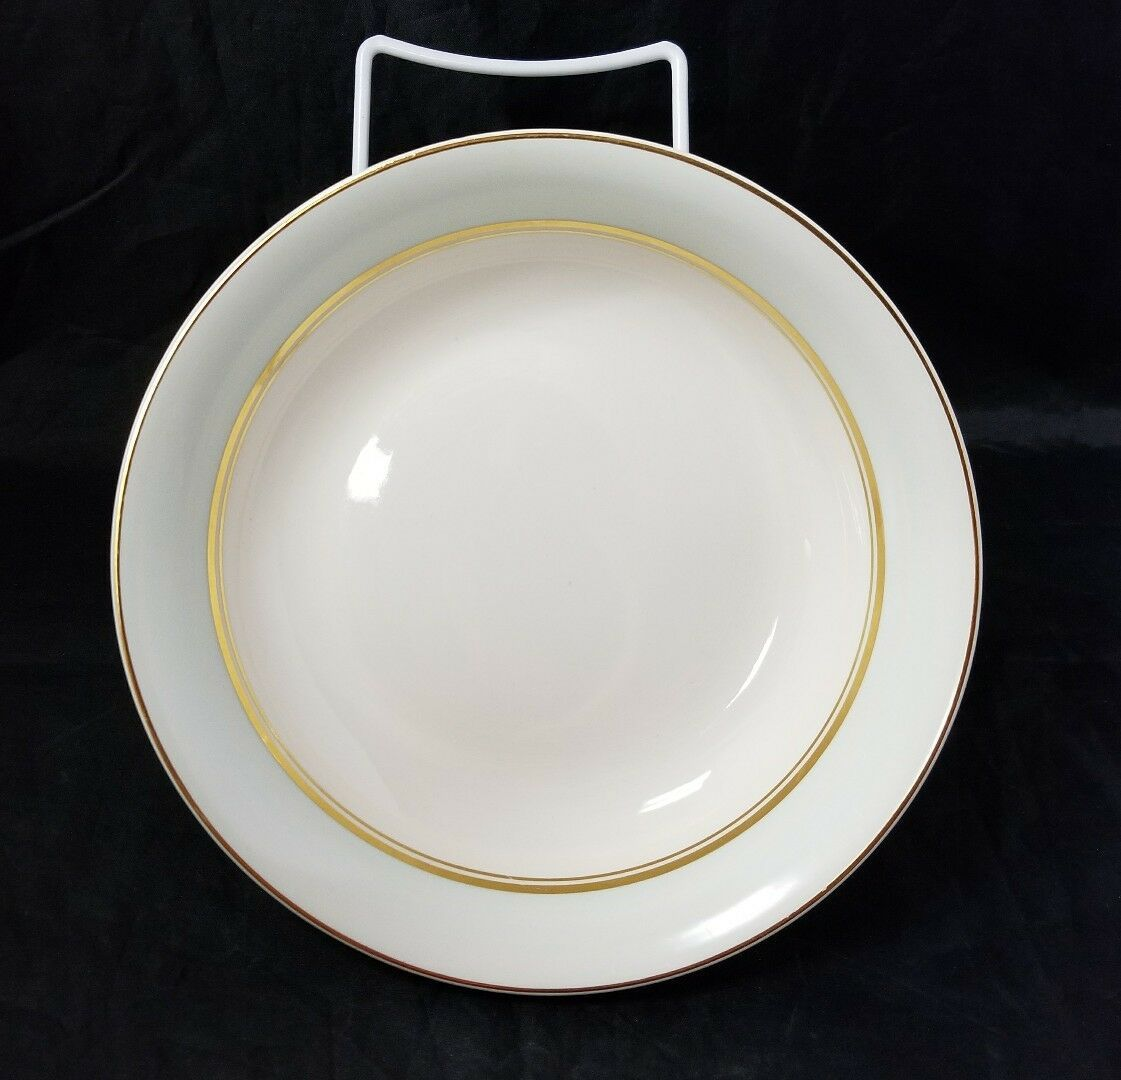 The French Saxon China Co Soup Salad Bowls Set of 4, 22kt Gold, Pottery Made USA